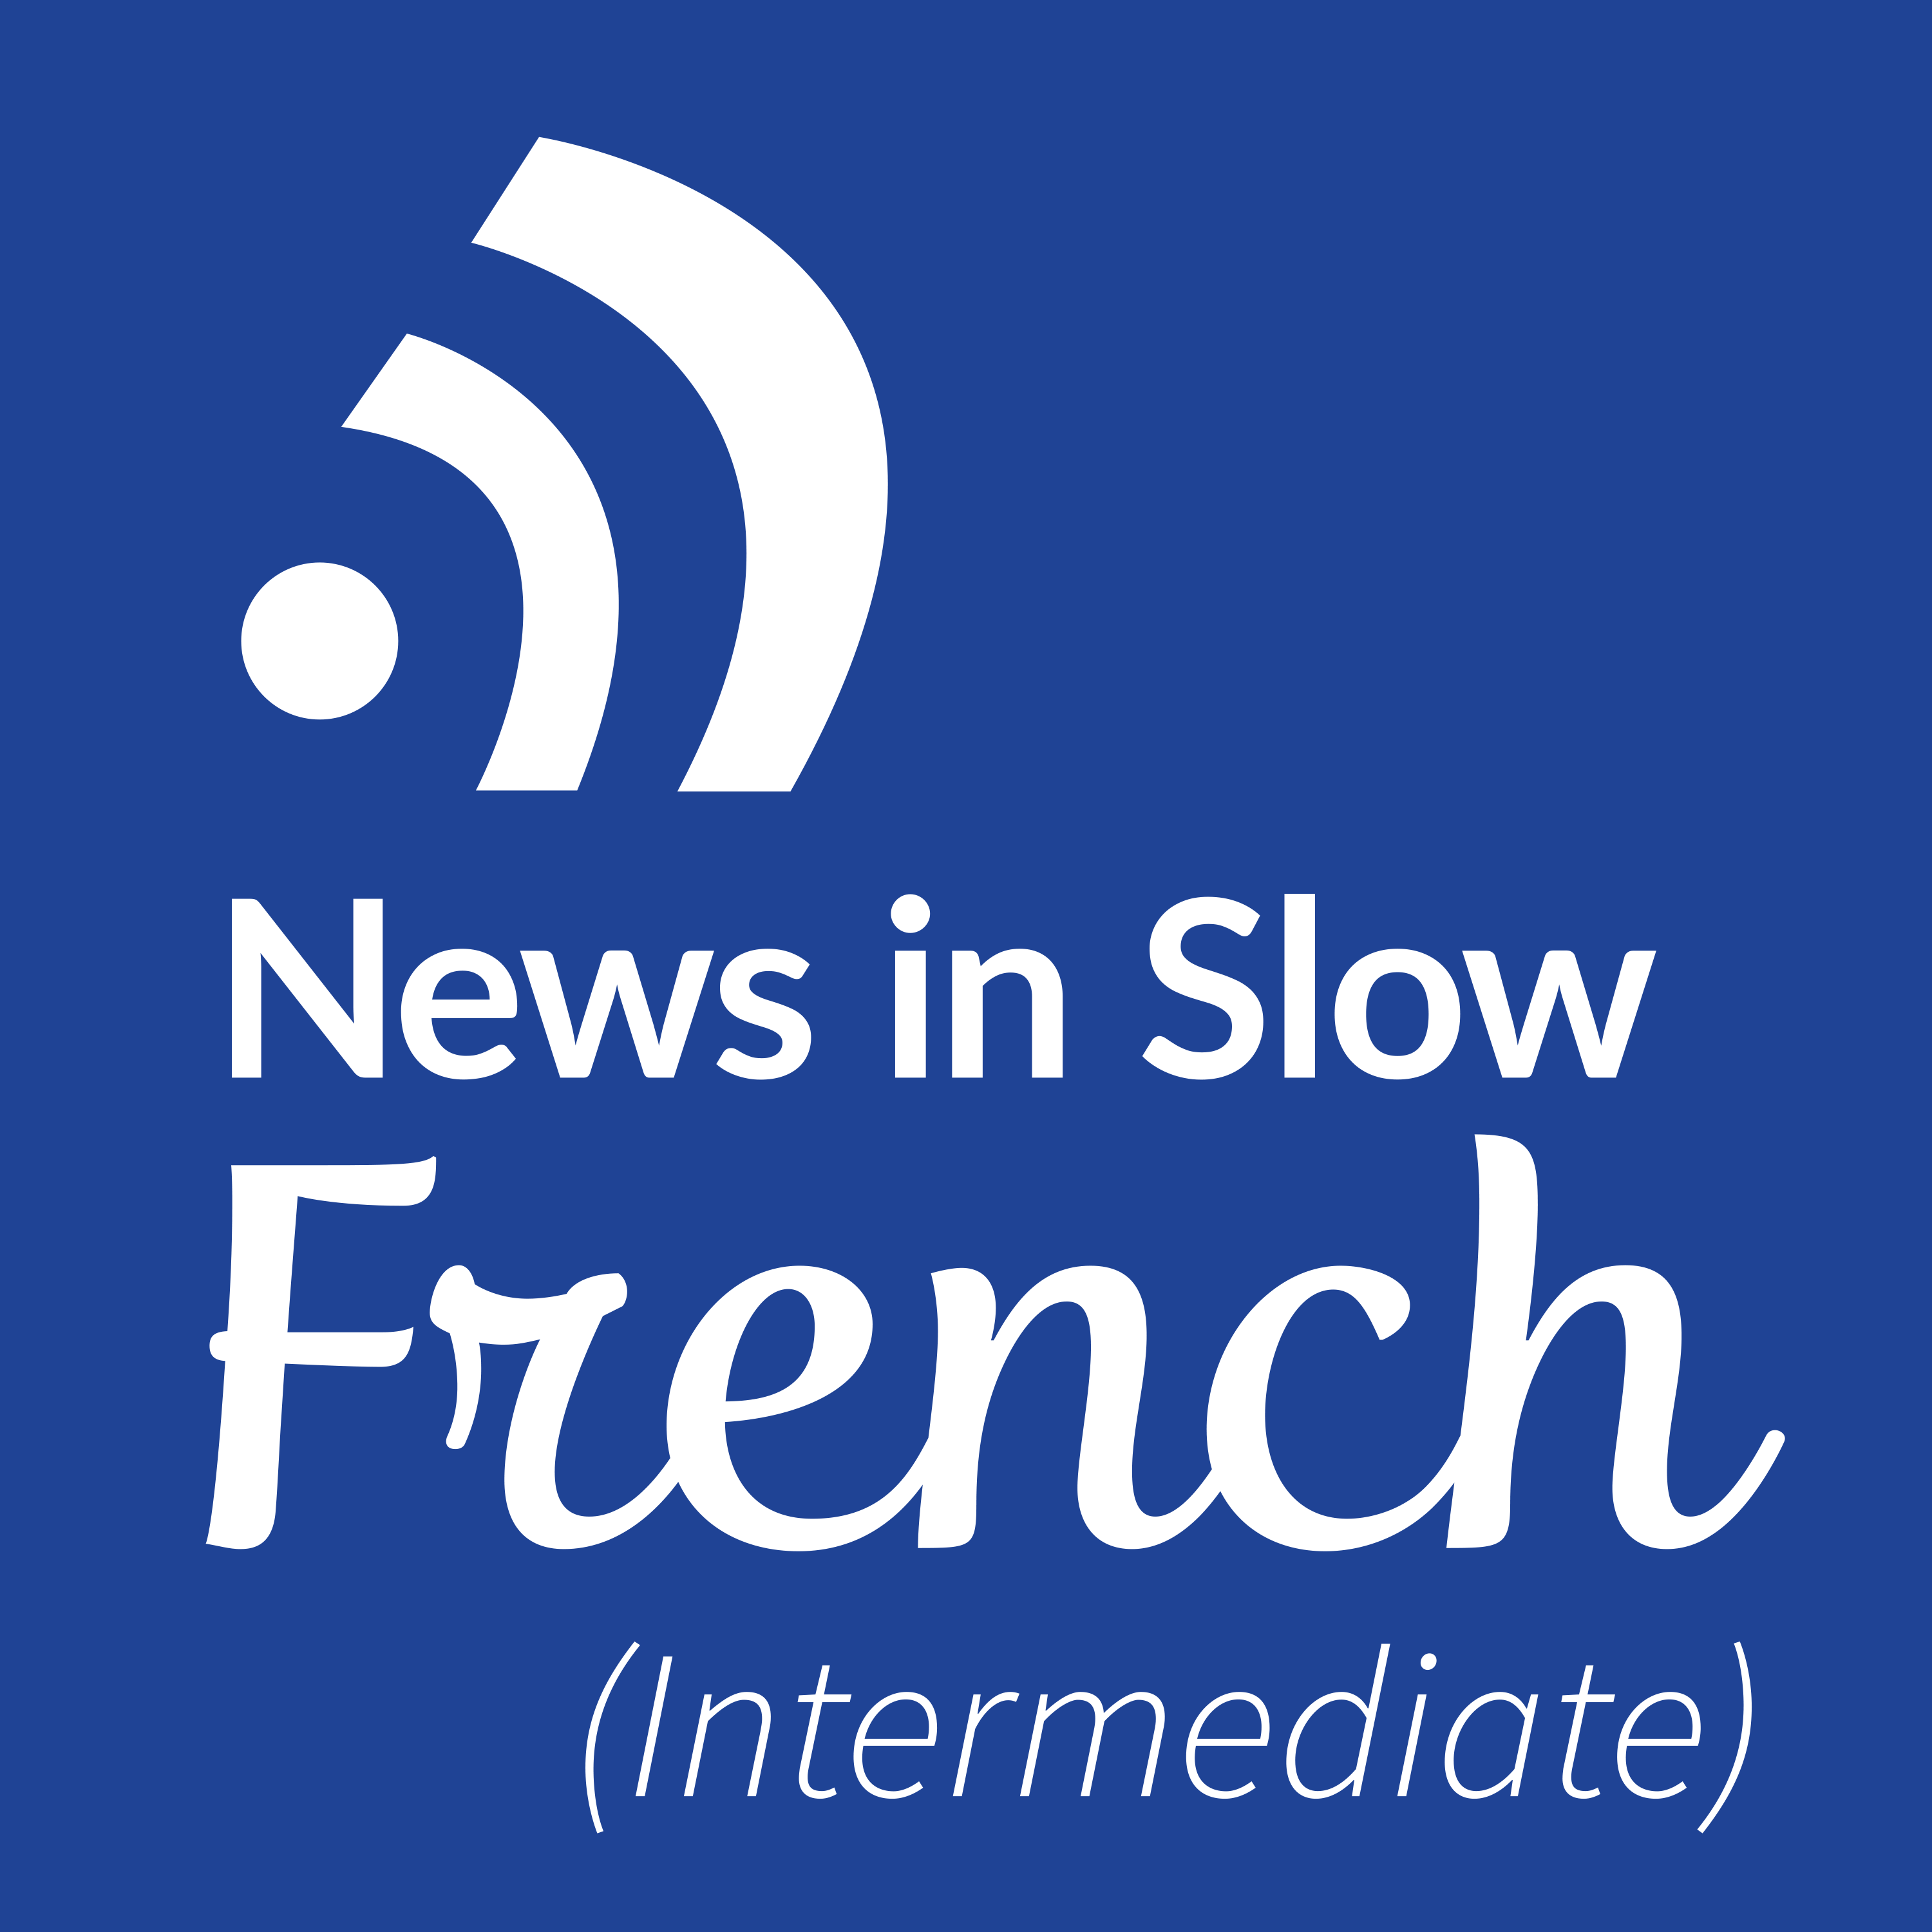 News in Slow French #250 - French conversation about current events